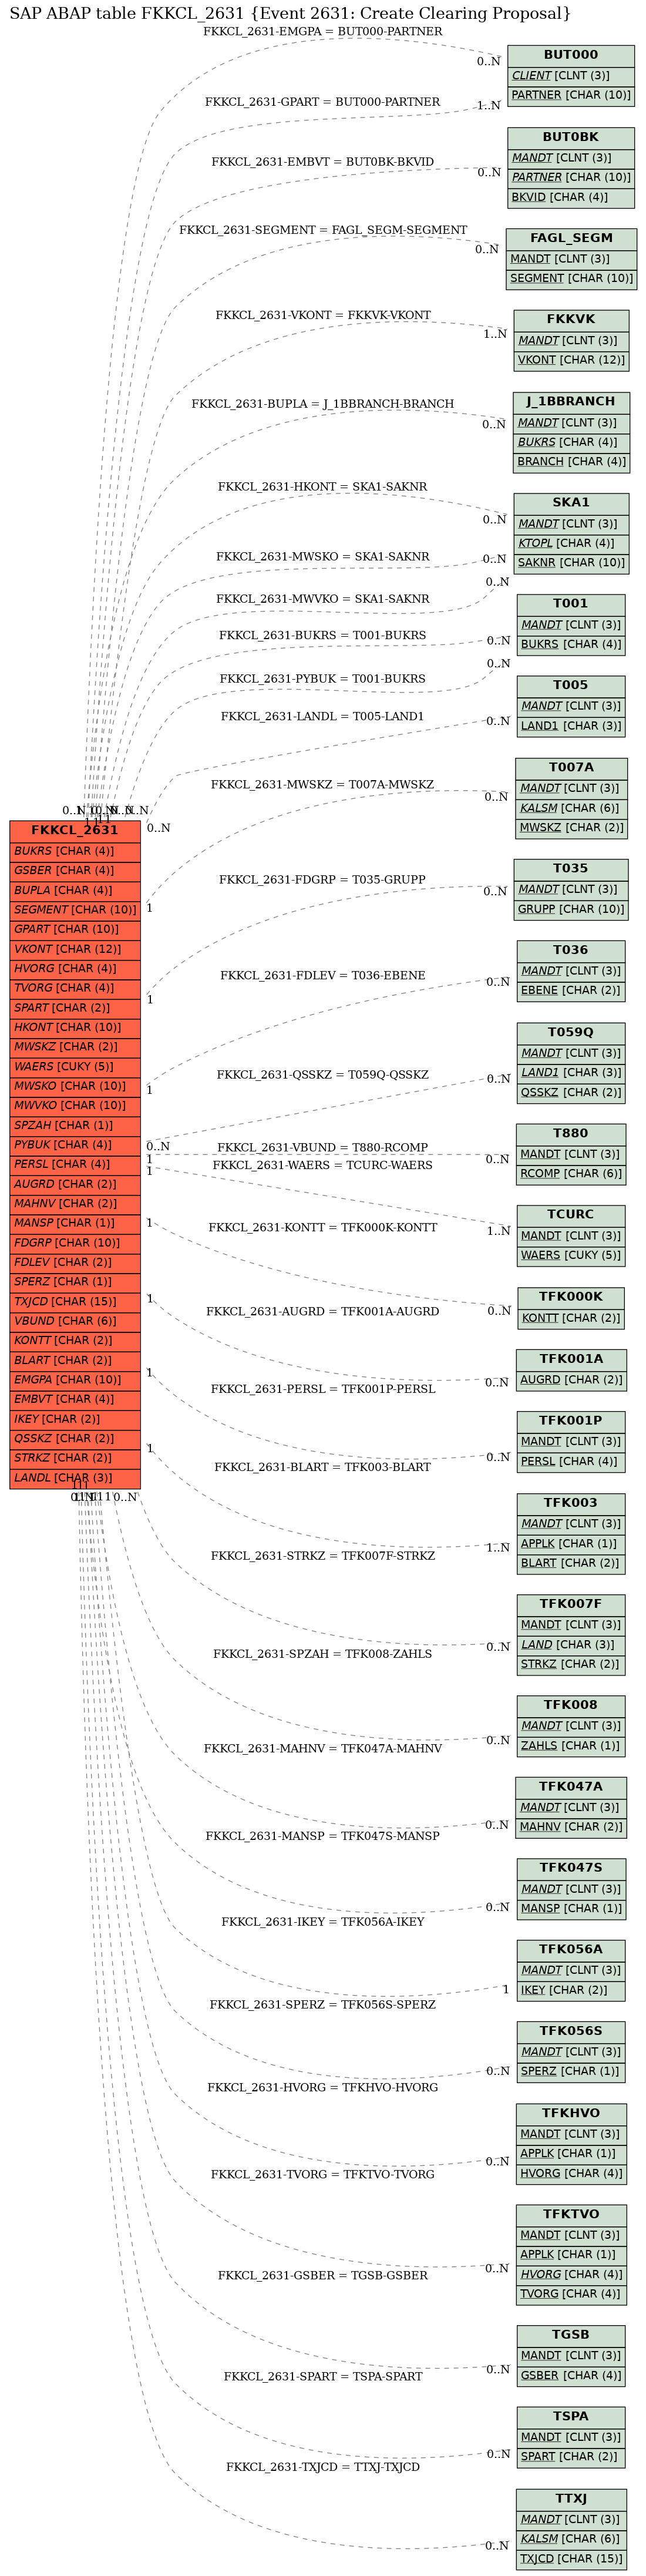 E-R Diagram for table FKKCL_2631 (Event 2631: Create Clearing Proposal)